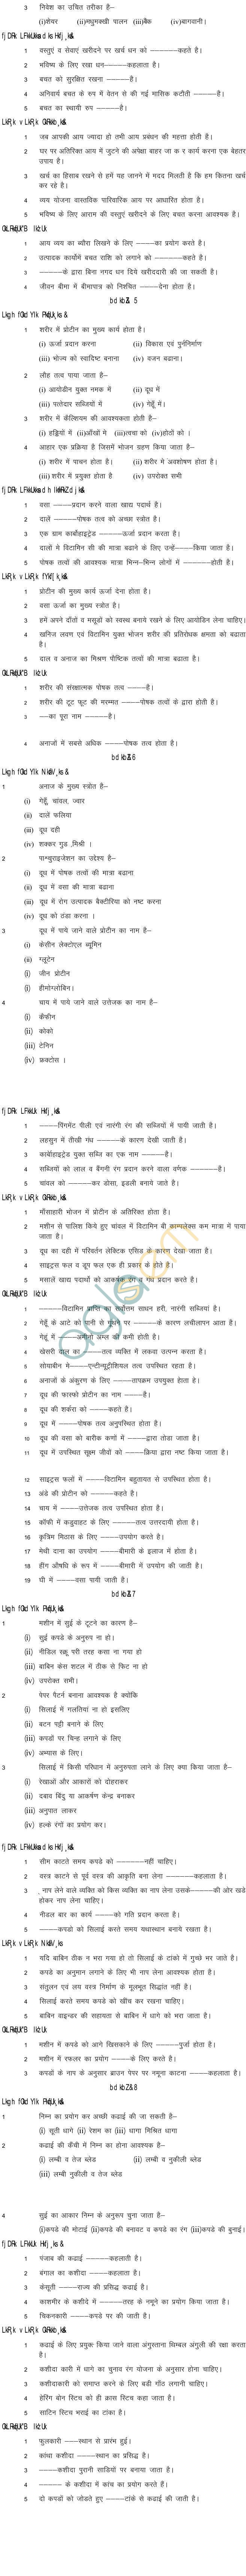 Chhattisgarh Board Class 11 Question Bank - Ahar & Poshan